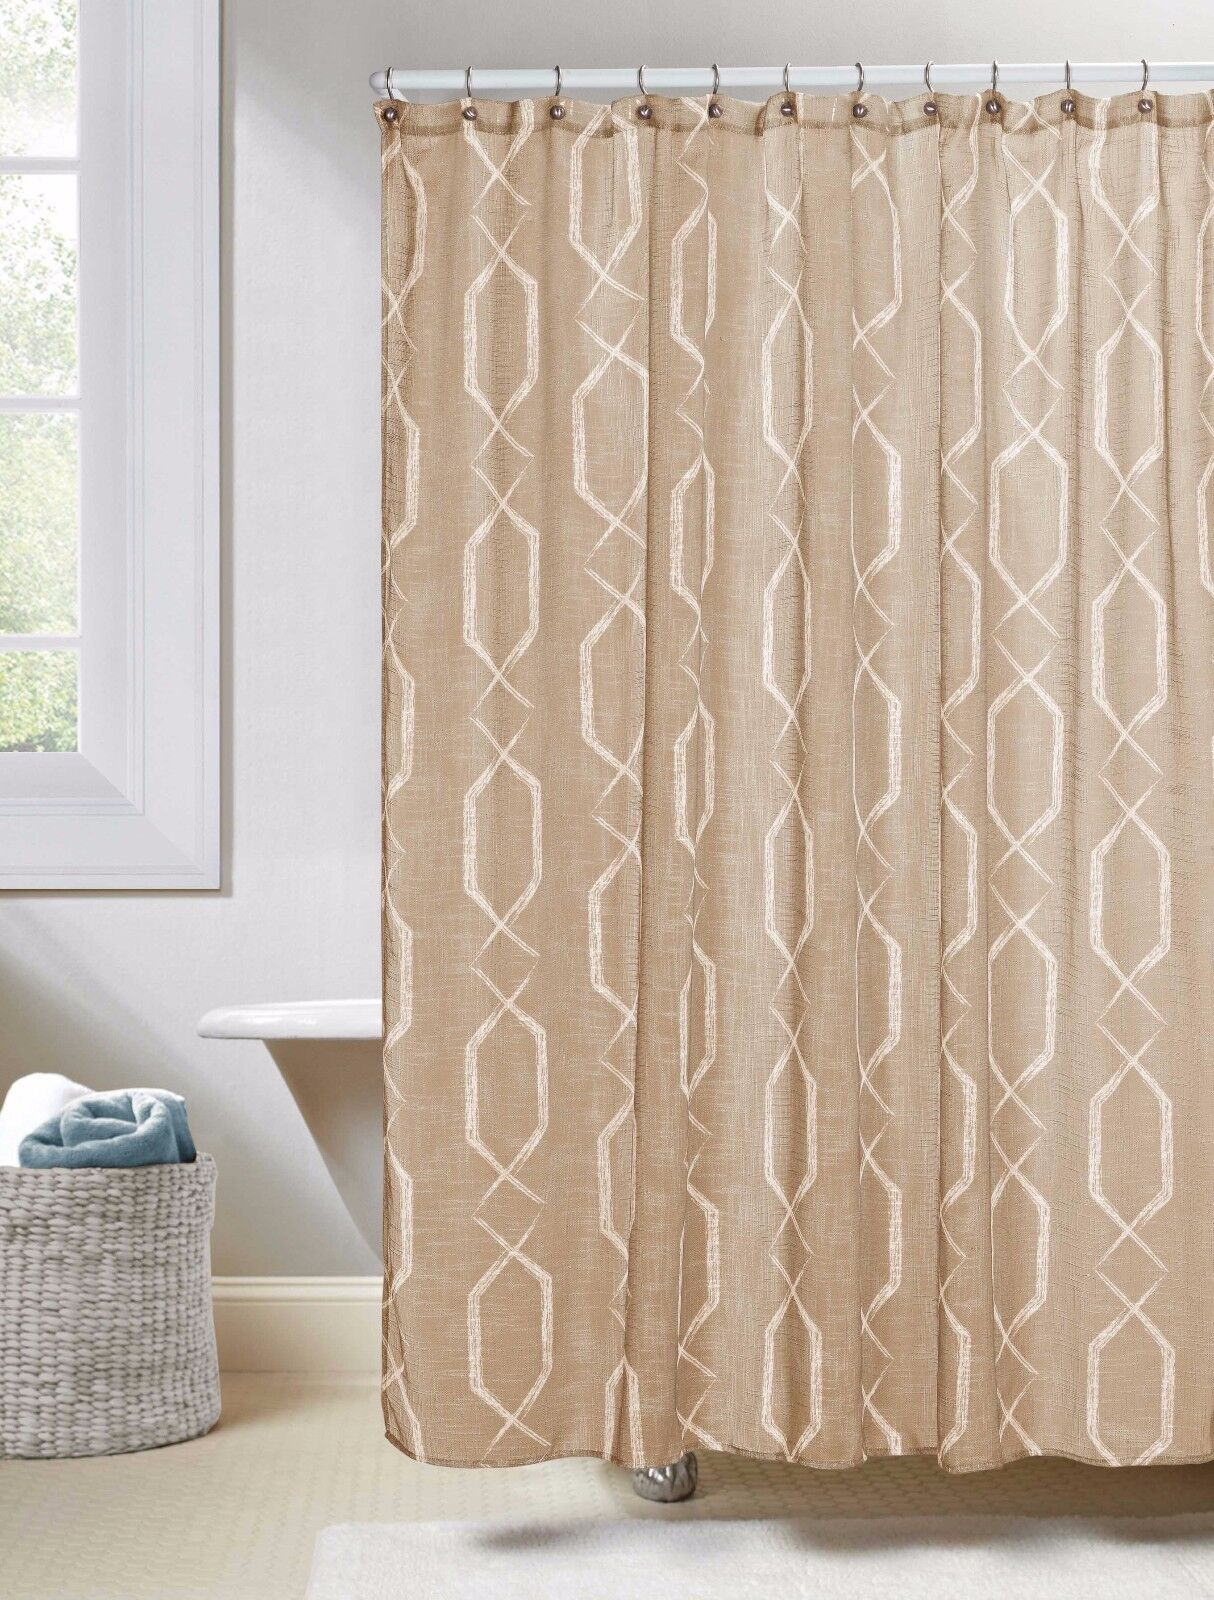 home bed curtains regan bath colormate delightful design shocking shower curtain ideas taupe